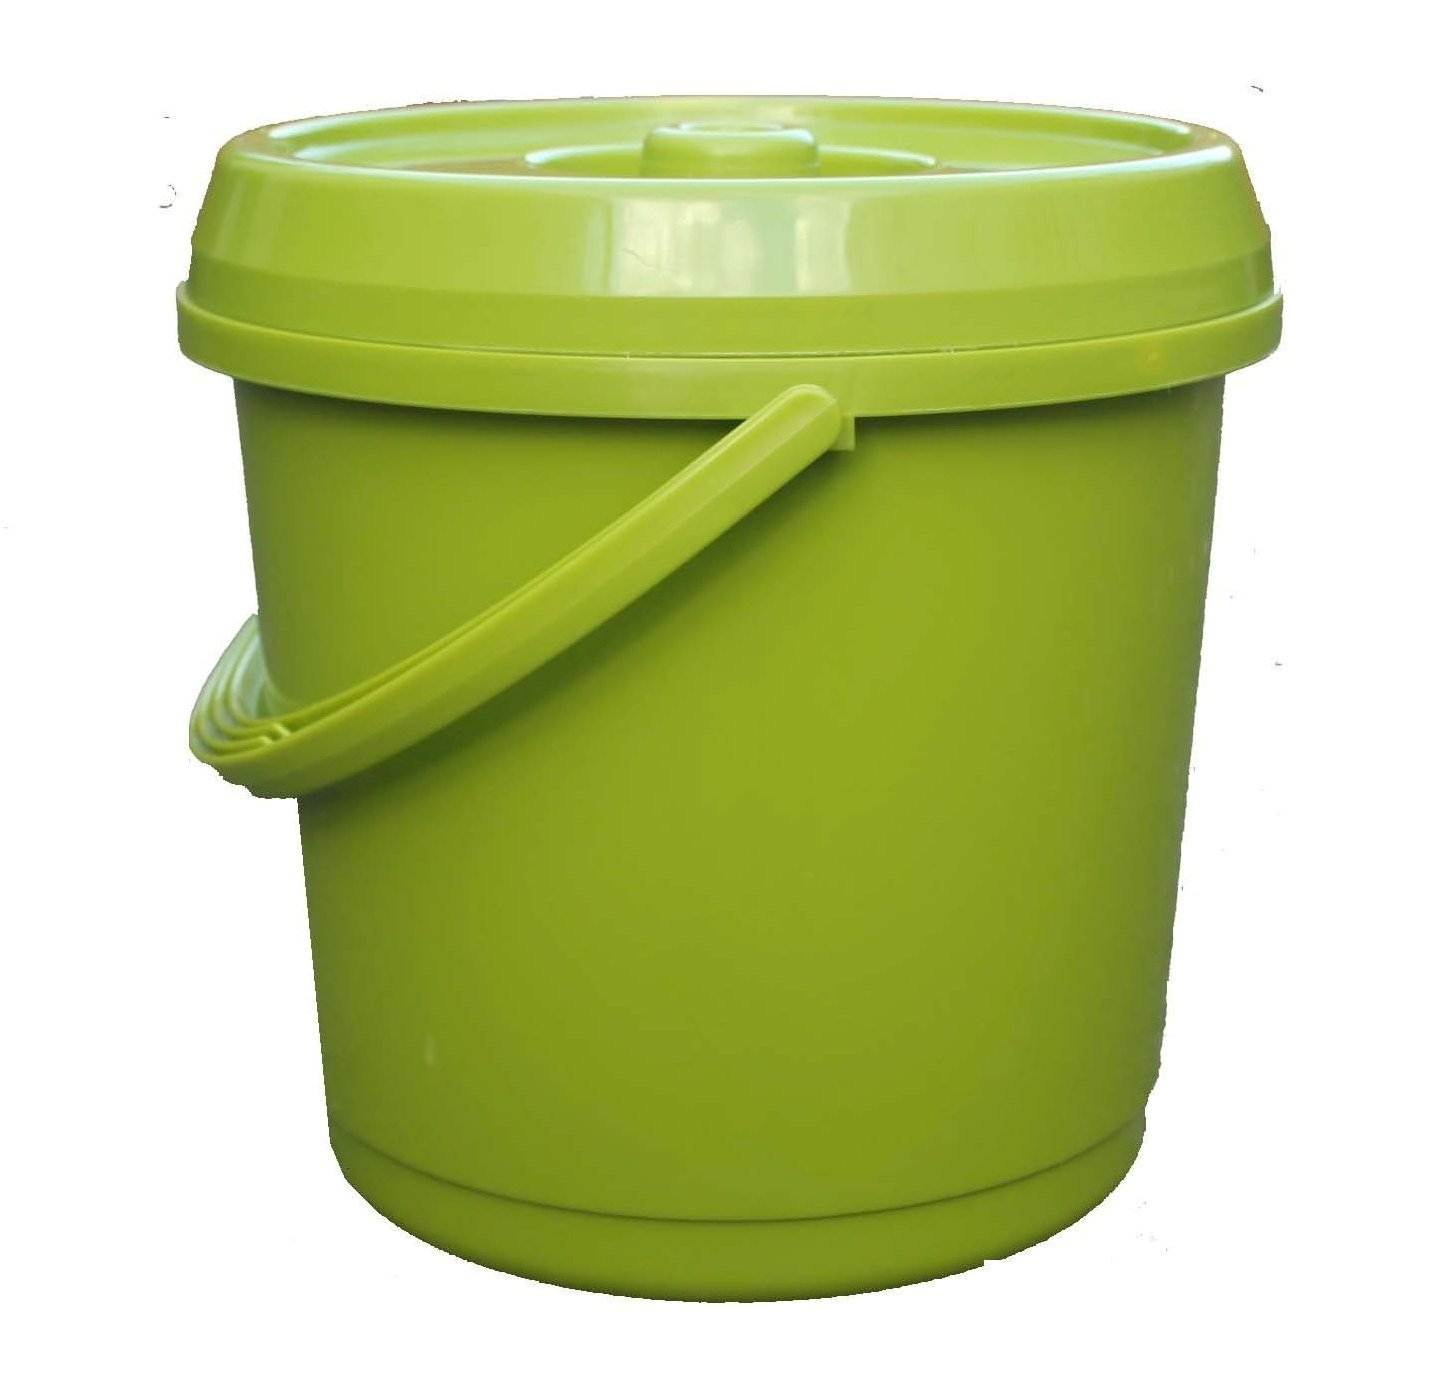 14L Litre GREEN Plastic Bucket With Lid Carry Handle Ideal for Tub / Bucket / Animal Feed / Bird Seed by S&MC Homeware